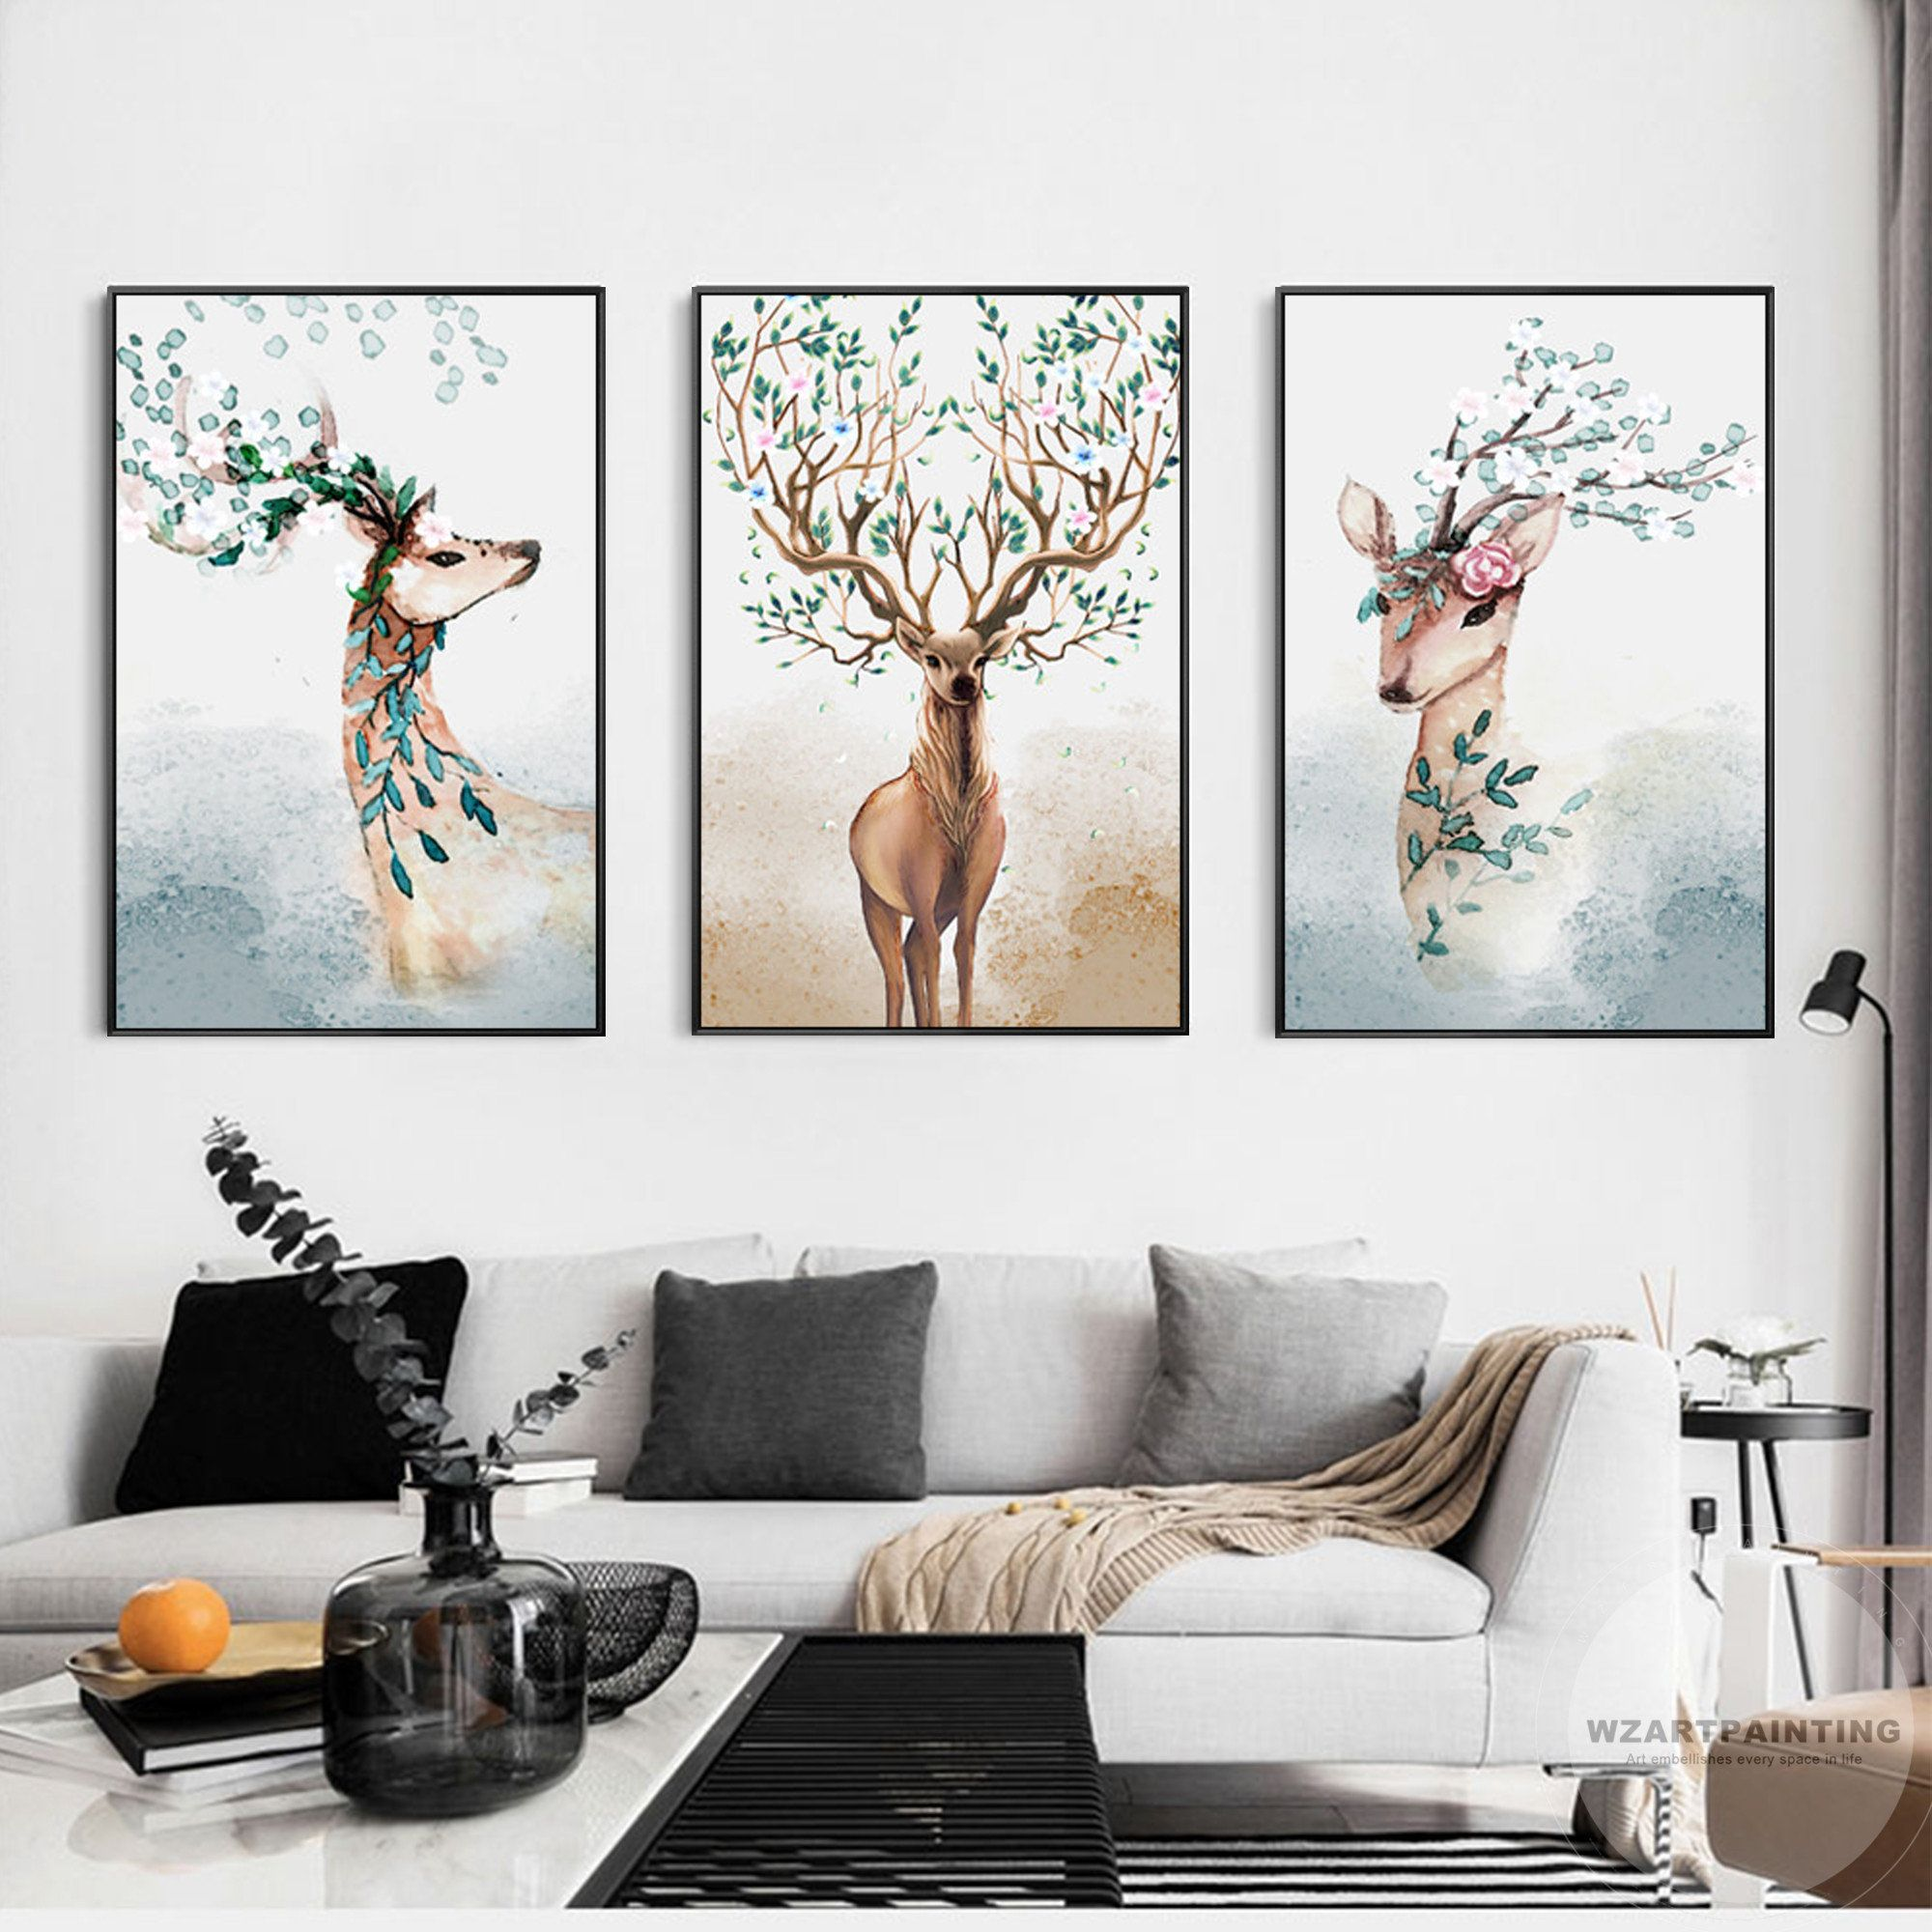 Framed Wall Art 3 Pieces Deer Animal Green Leaf Print Painting Etsy In 2020 Diy Canvas Wall Art Framed Wall Art Abstract Art Wallpaper